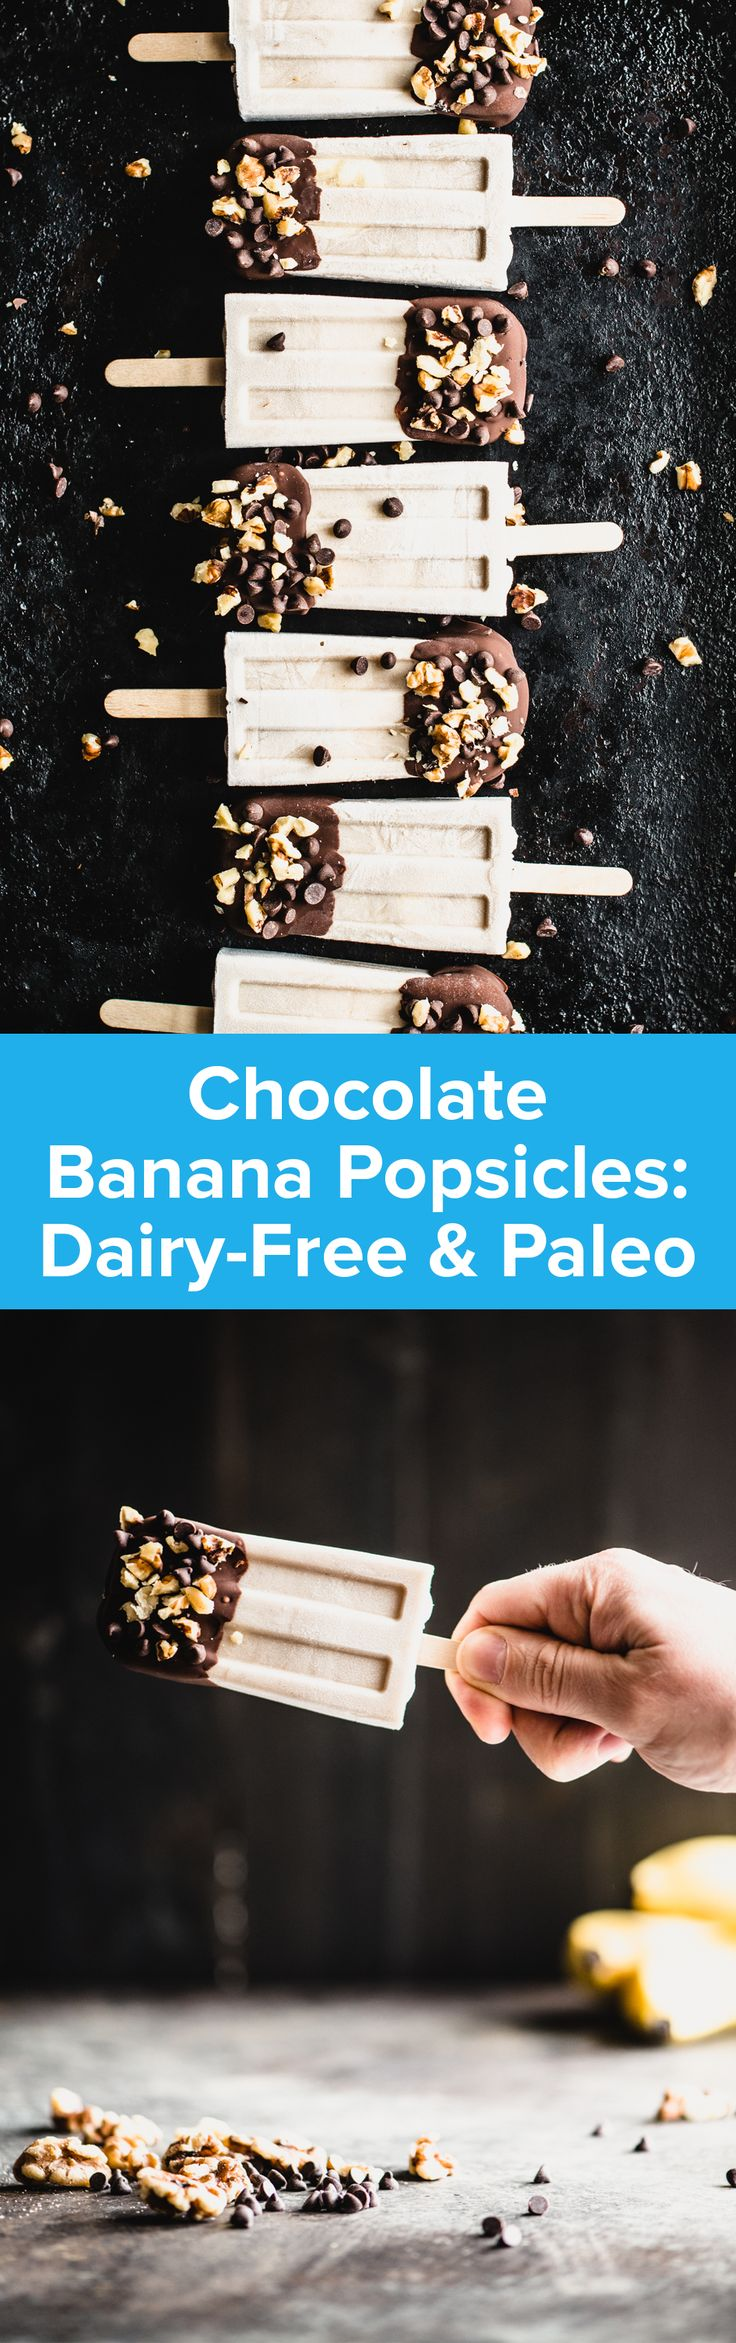 Chocolate Banana Popsicles Recipe | StupidEasyPaleo.com